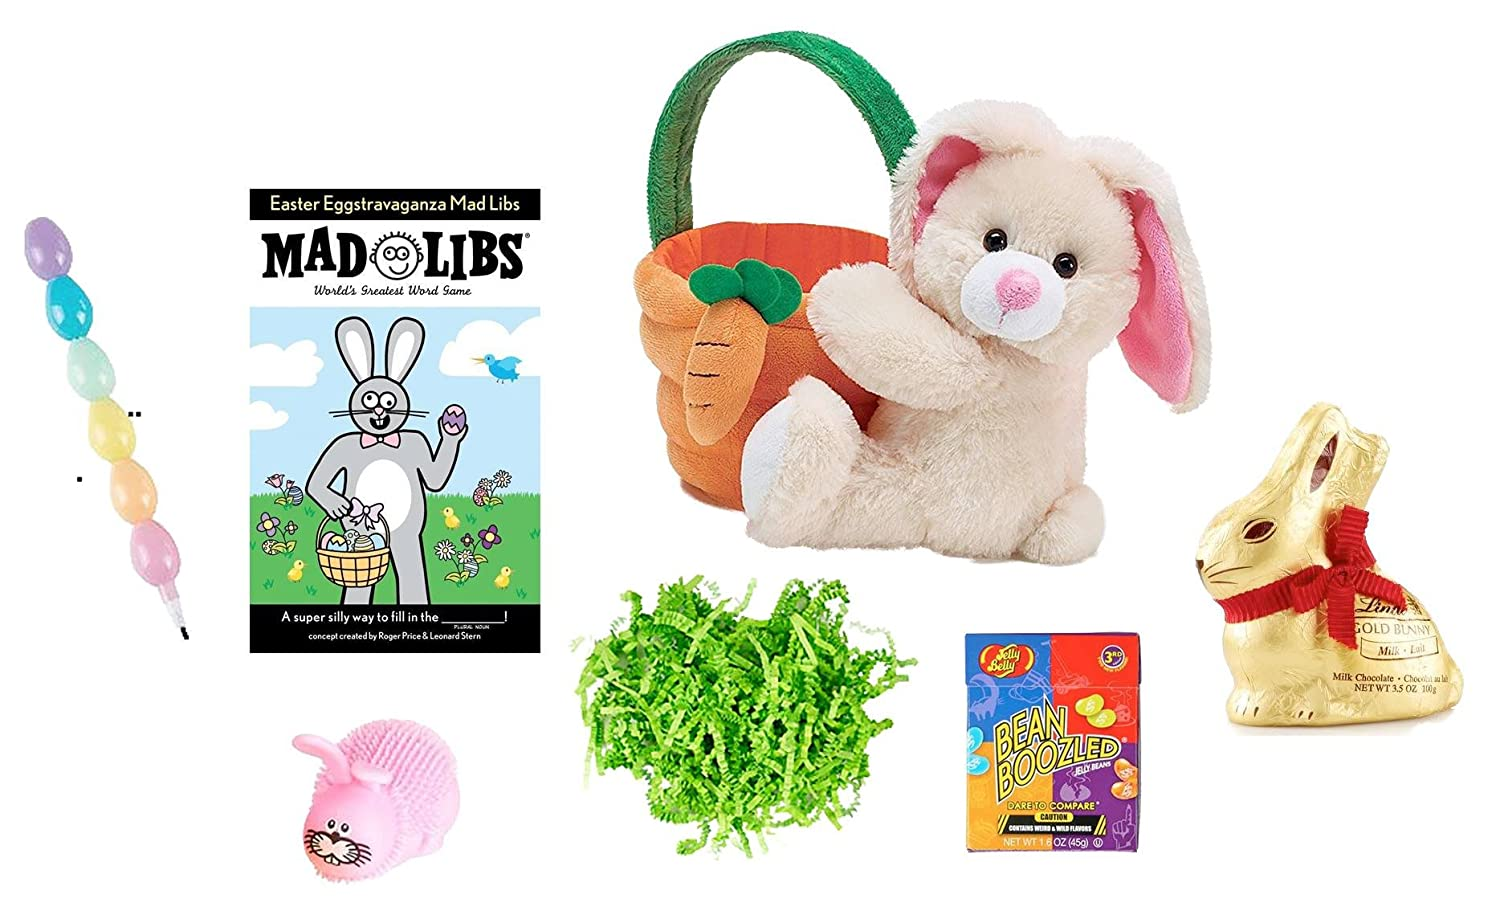 Easter baskets 20 30 dollars easter wikii the cookies are shaped and decorated as eggs easter bunnies and flowers for a springtime easter gift sure to have them hopping for joy choose a 5 7 negle Images